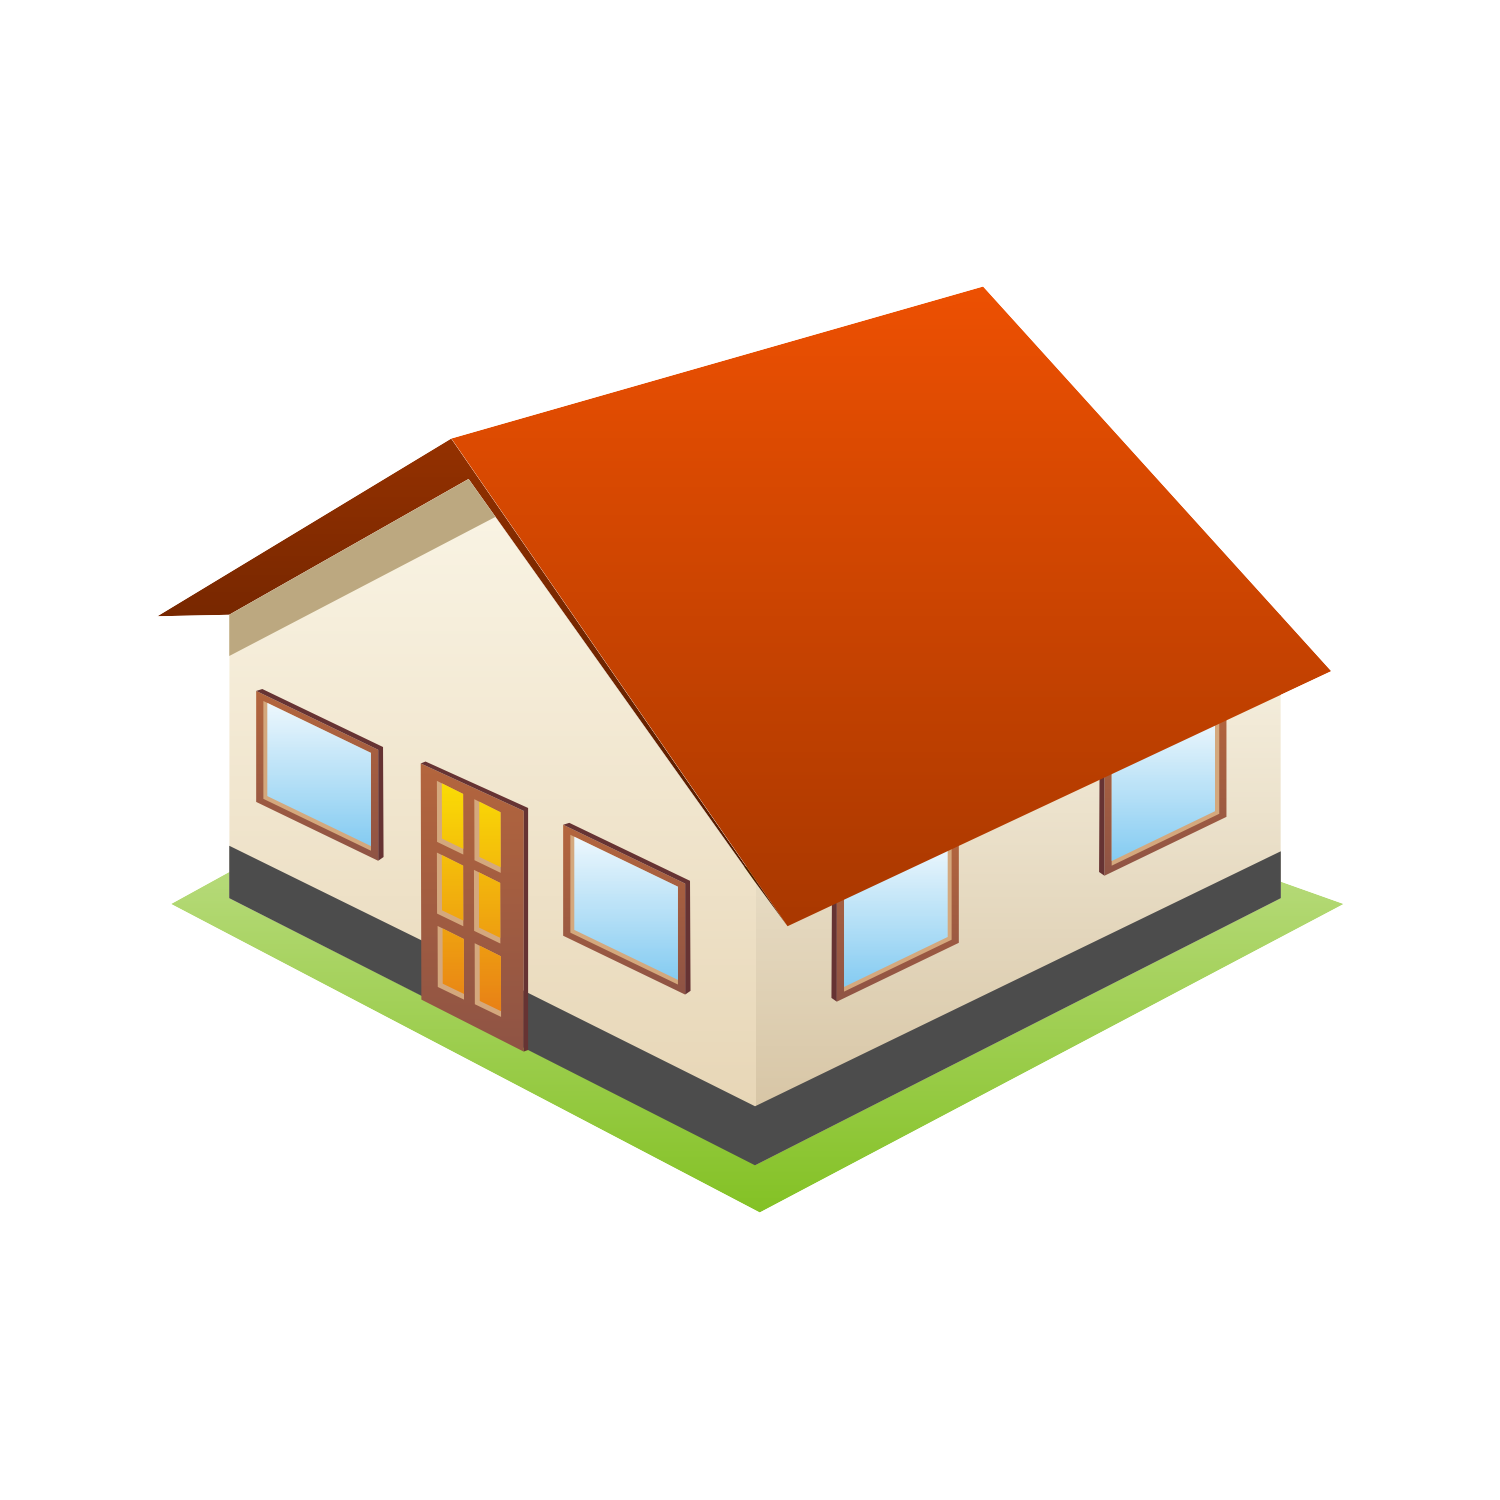 10 3D Home Icon Images